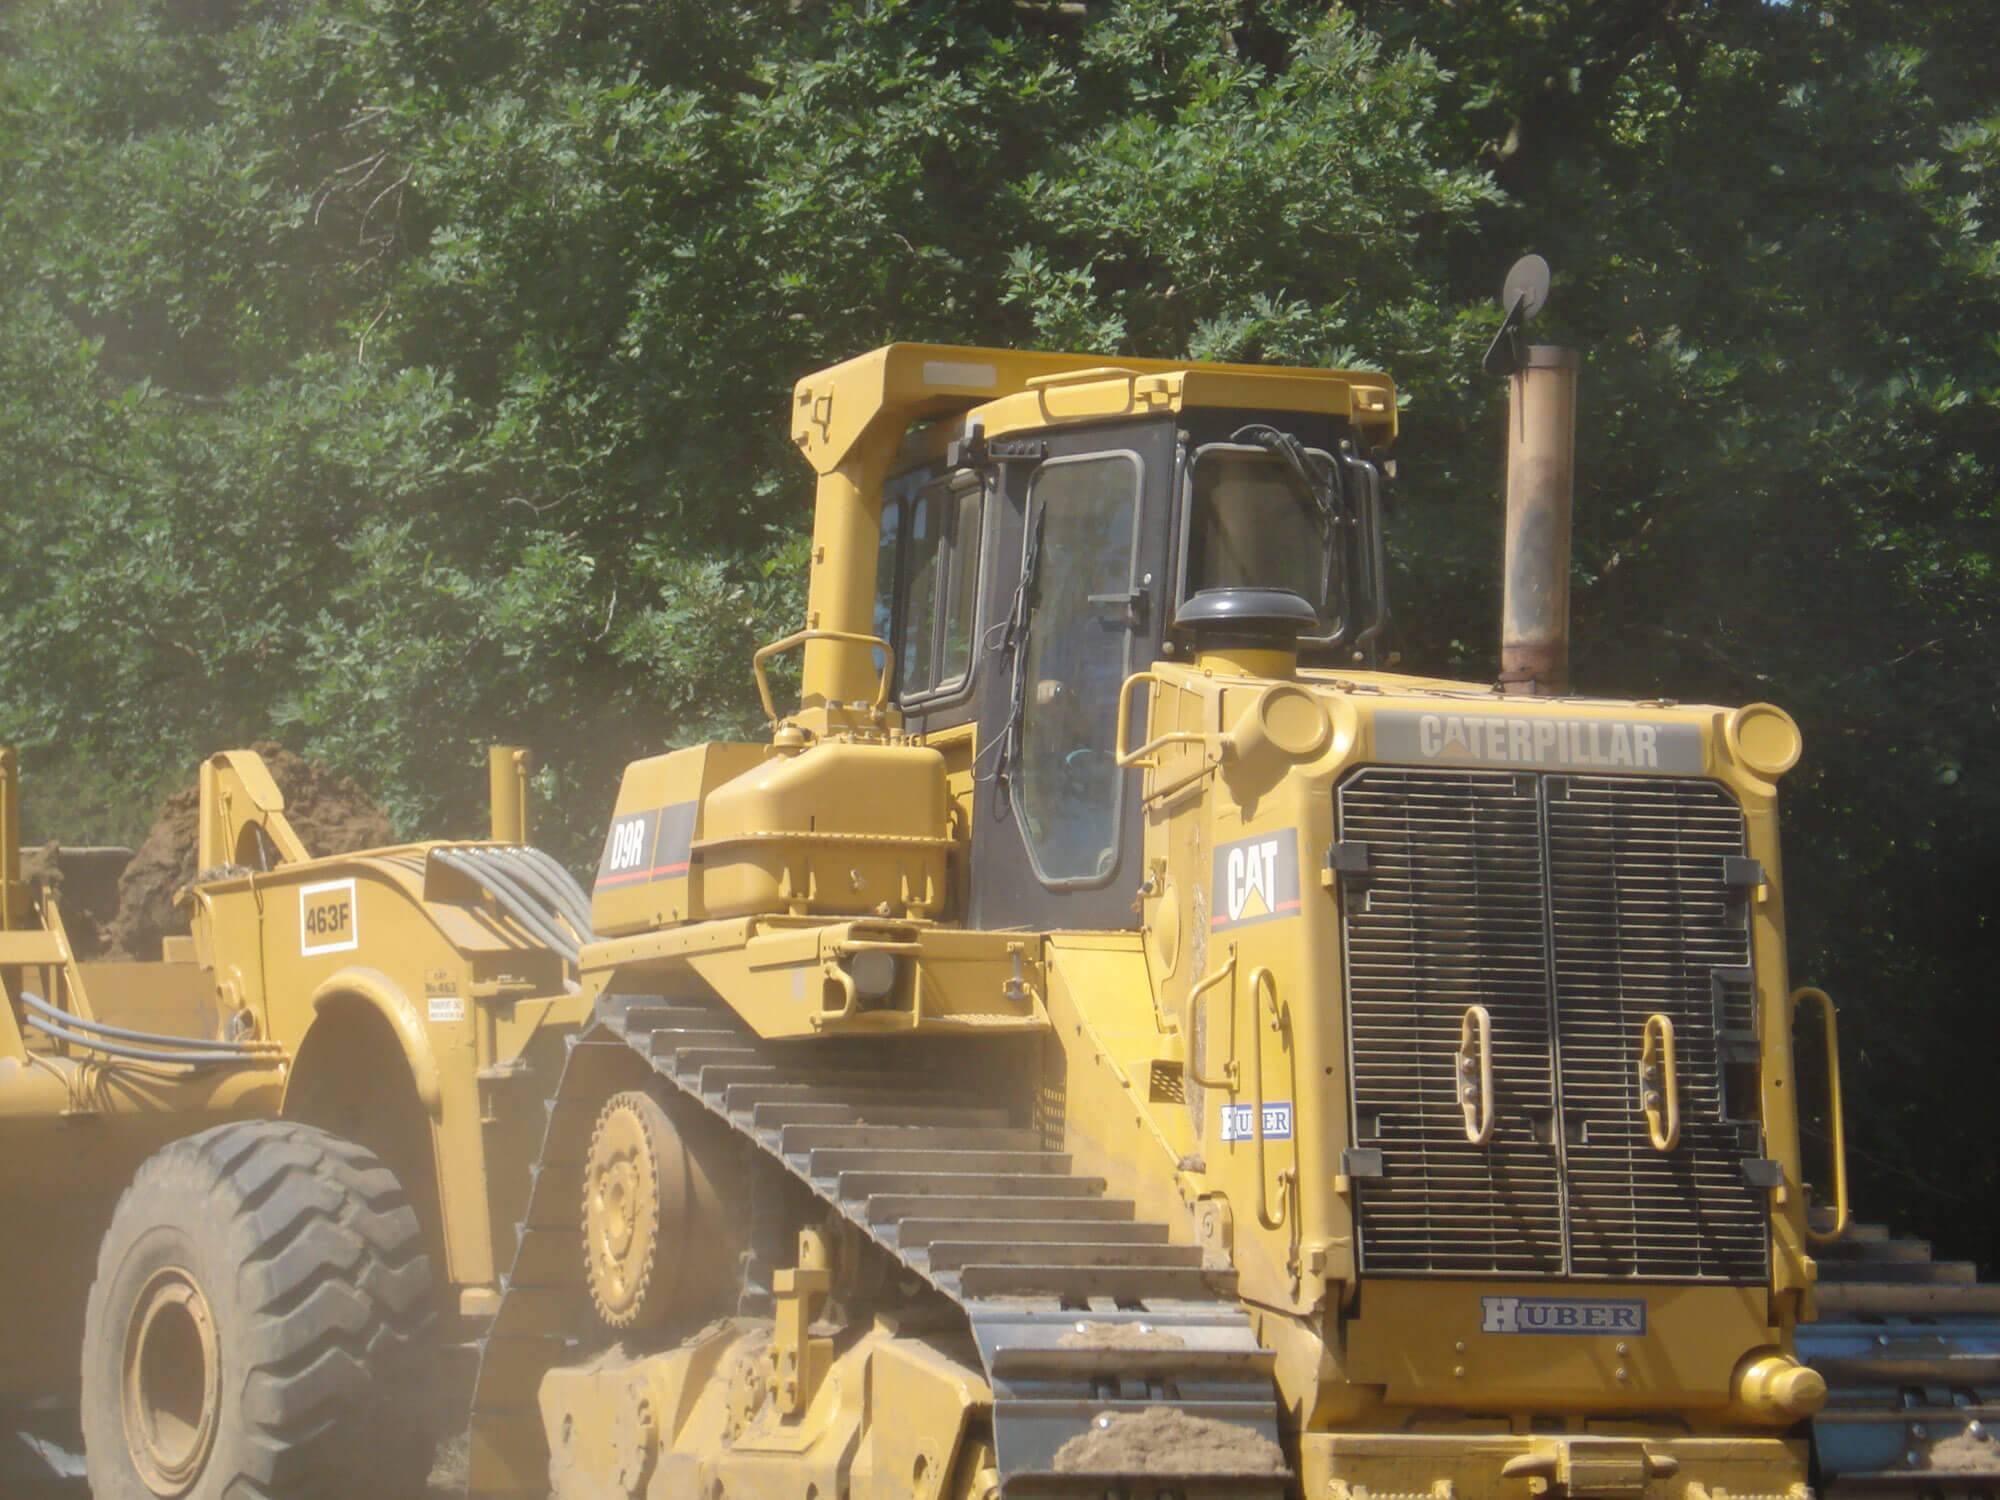 A Huber CAT completes work at Chevalia Ridge.